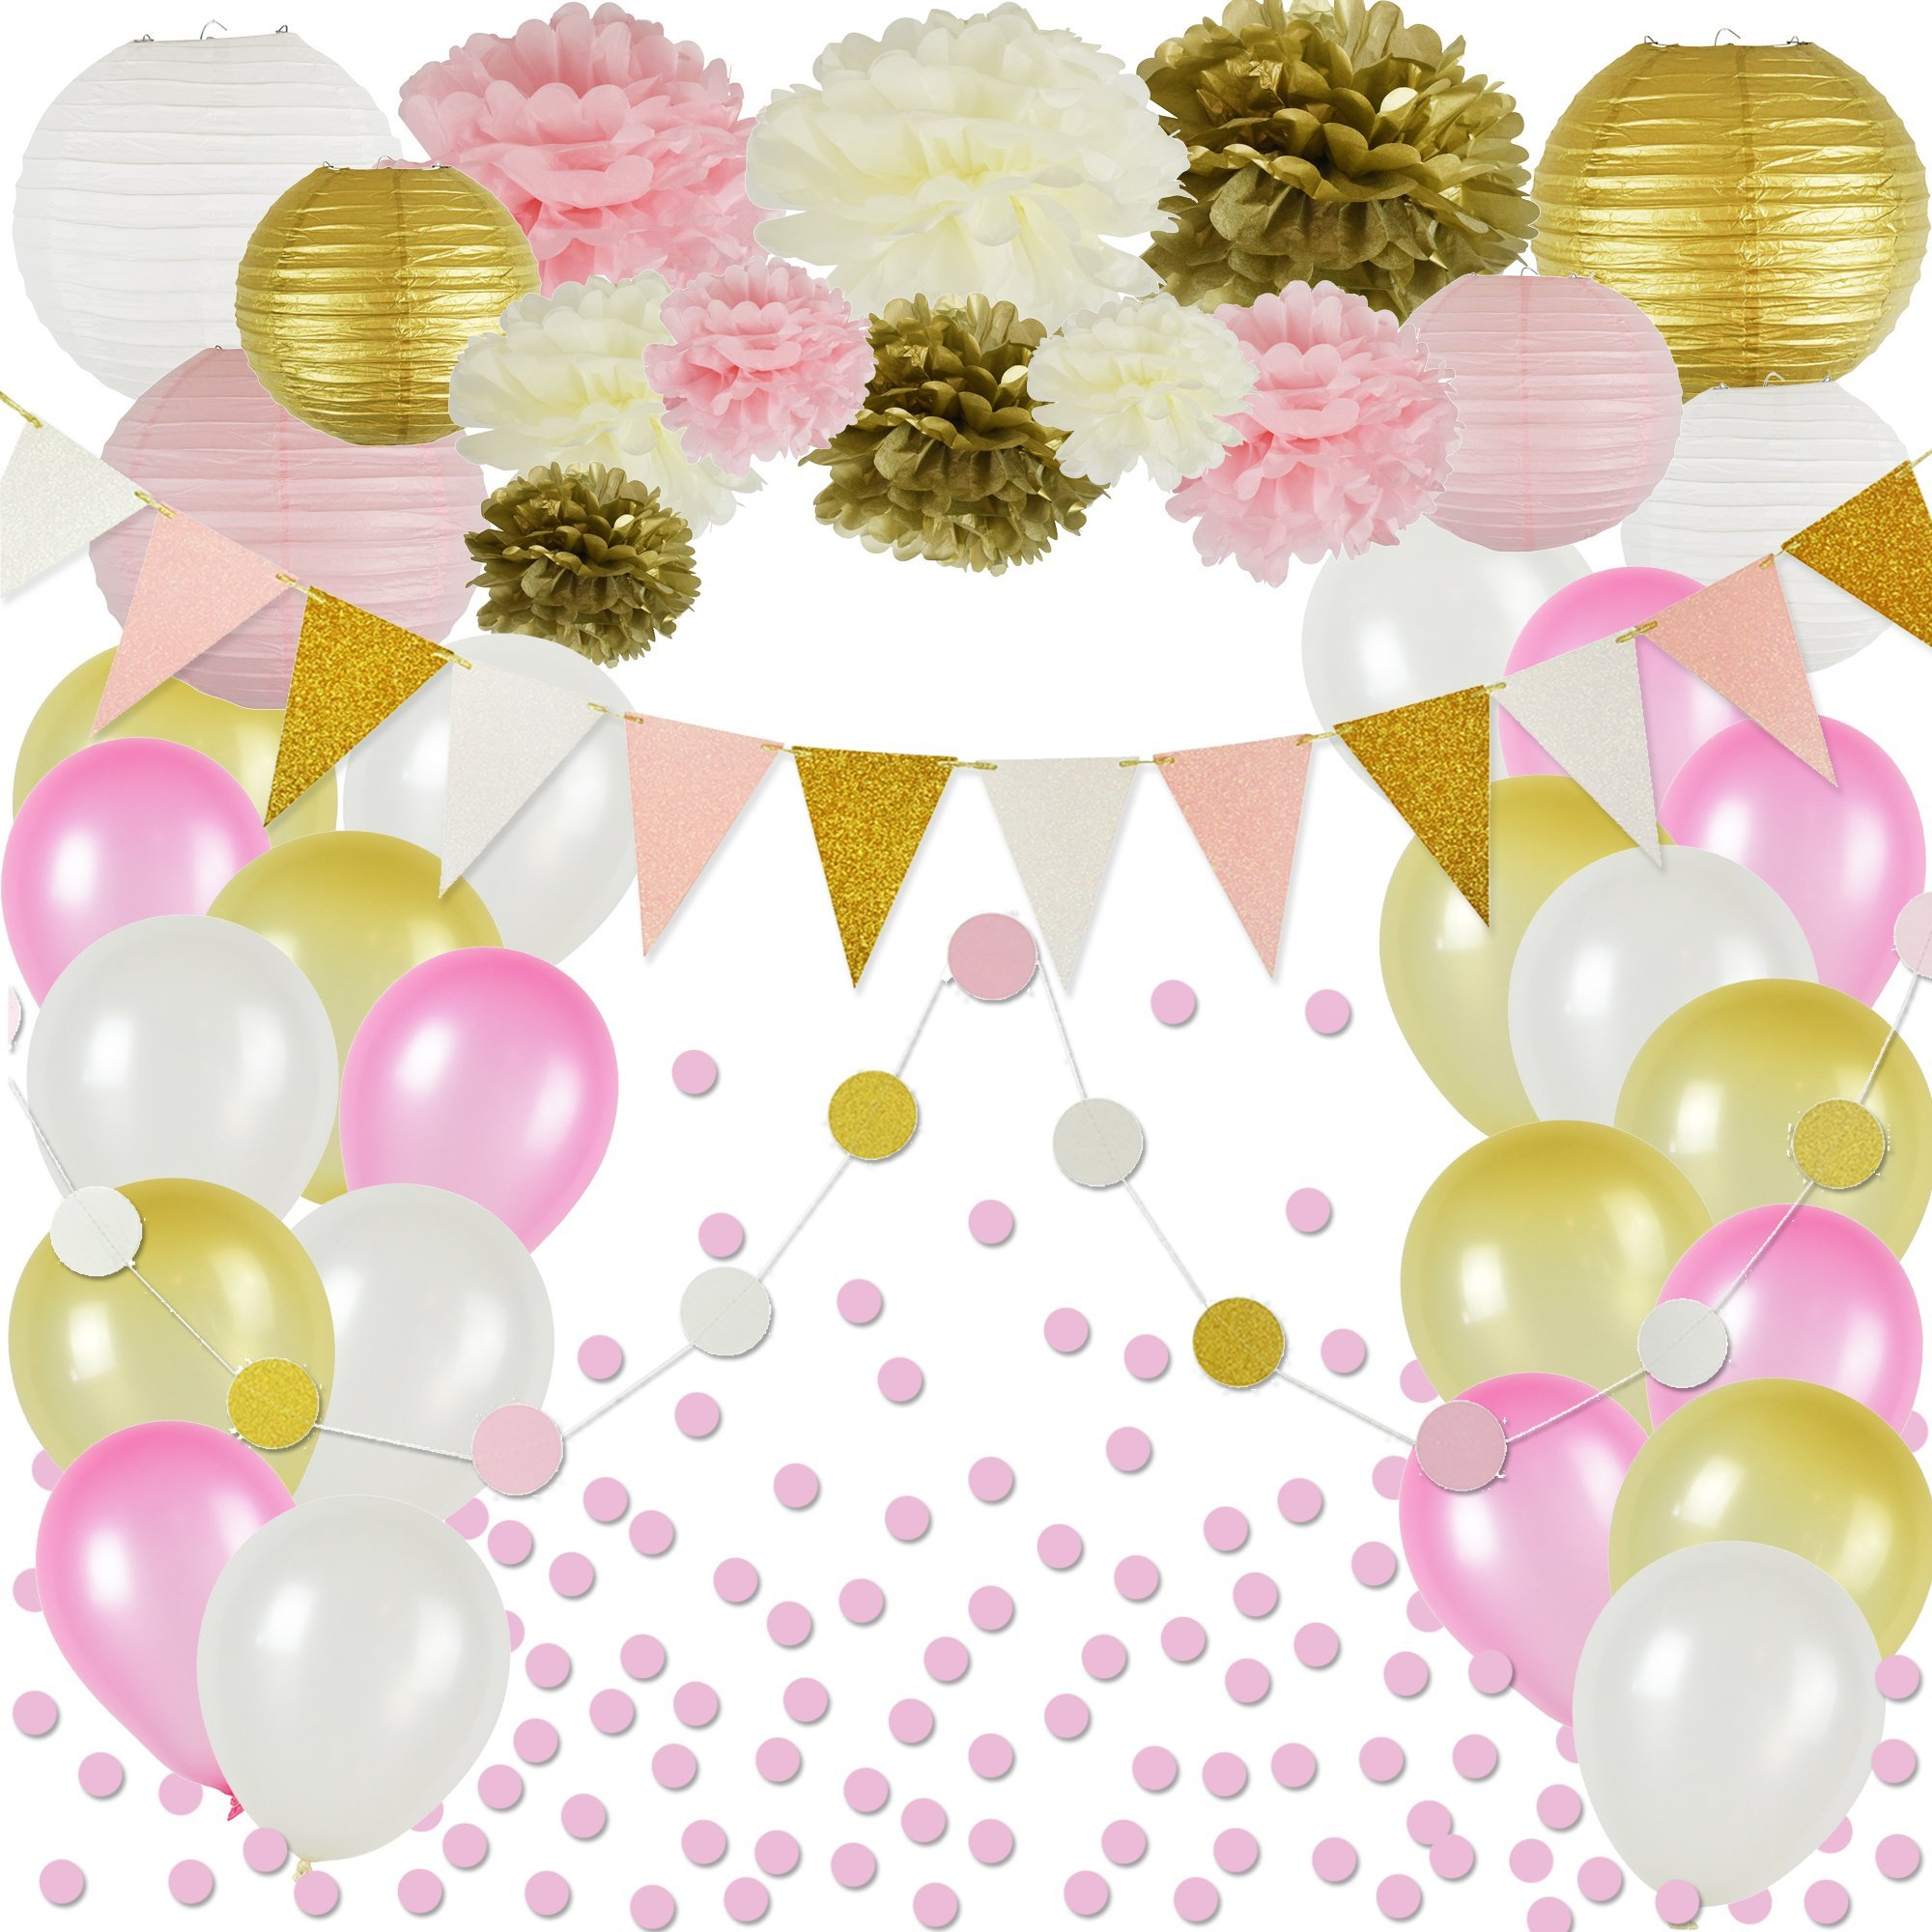 Pink and Gold Party Decorations, 50 pc Pink Party Supplies, Paper Pom Poms, Paper Lanterns, Glitter Garlands, Balloons, Confetti- Birthday Party - Princess Party - Ballerina Party - Bachelorette Party by Shamrise